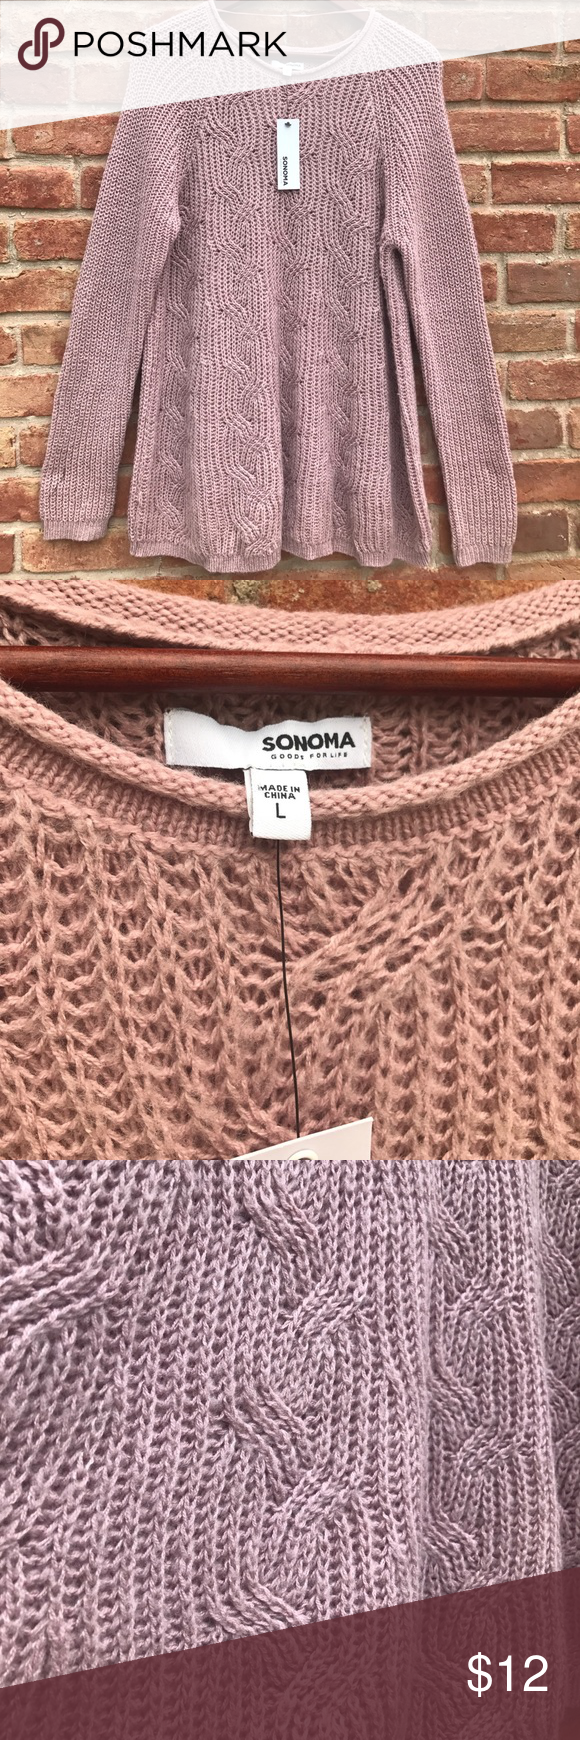 Beautiful pink sweater !! Brand new with tags!! Super soft sweater ...